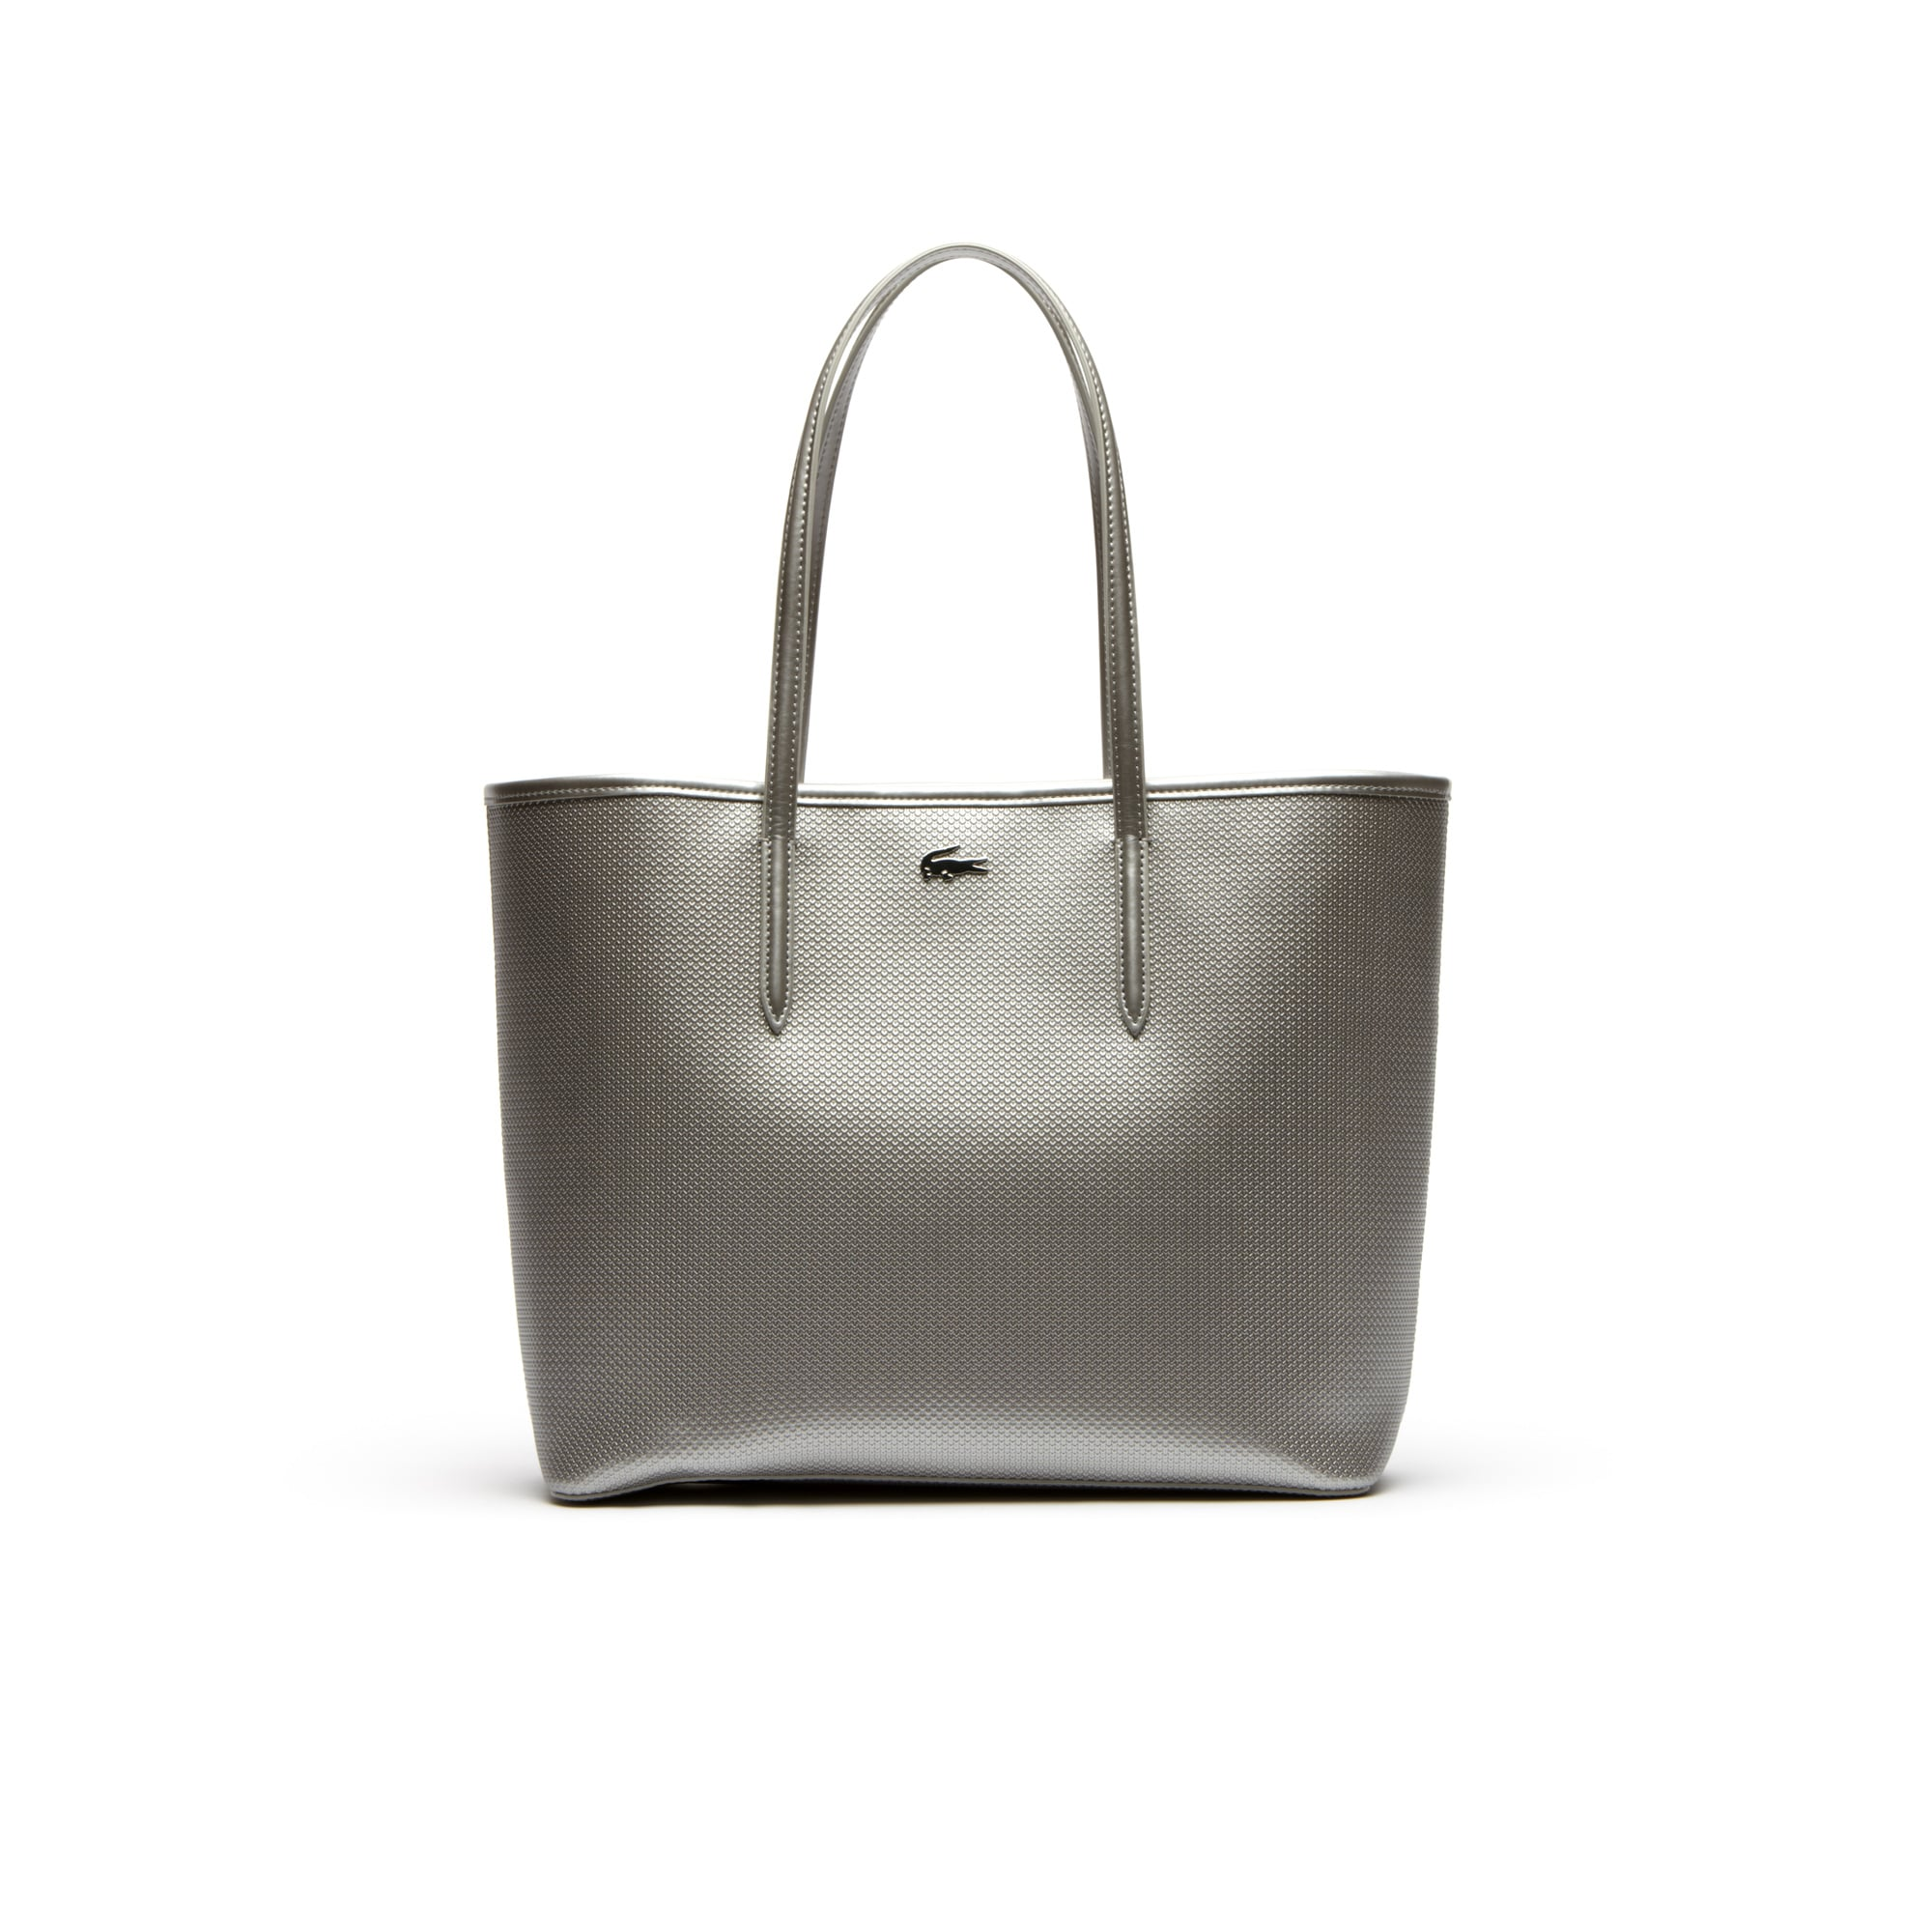 Chantaco tote bag in gold or silver piqué leather